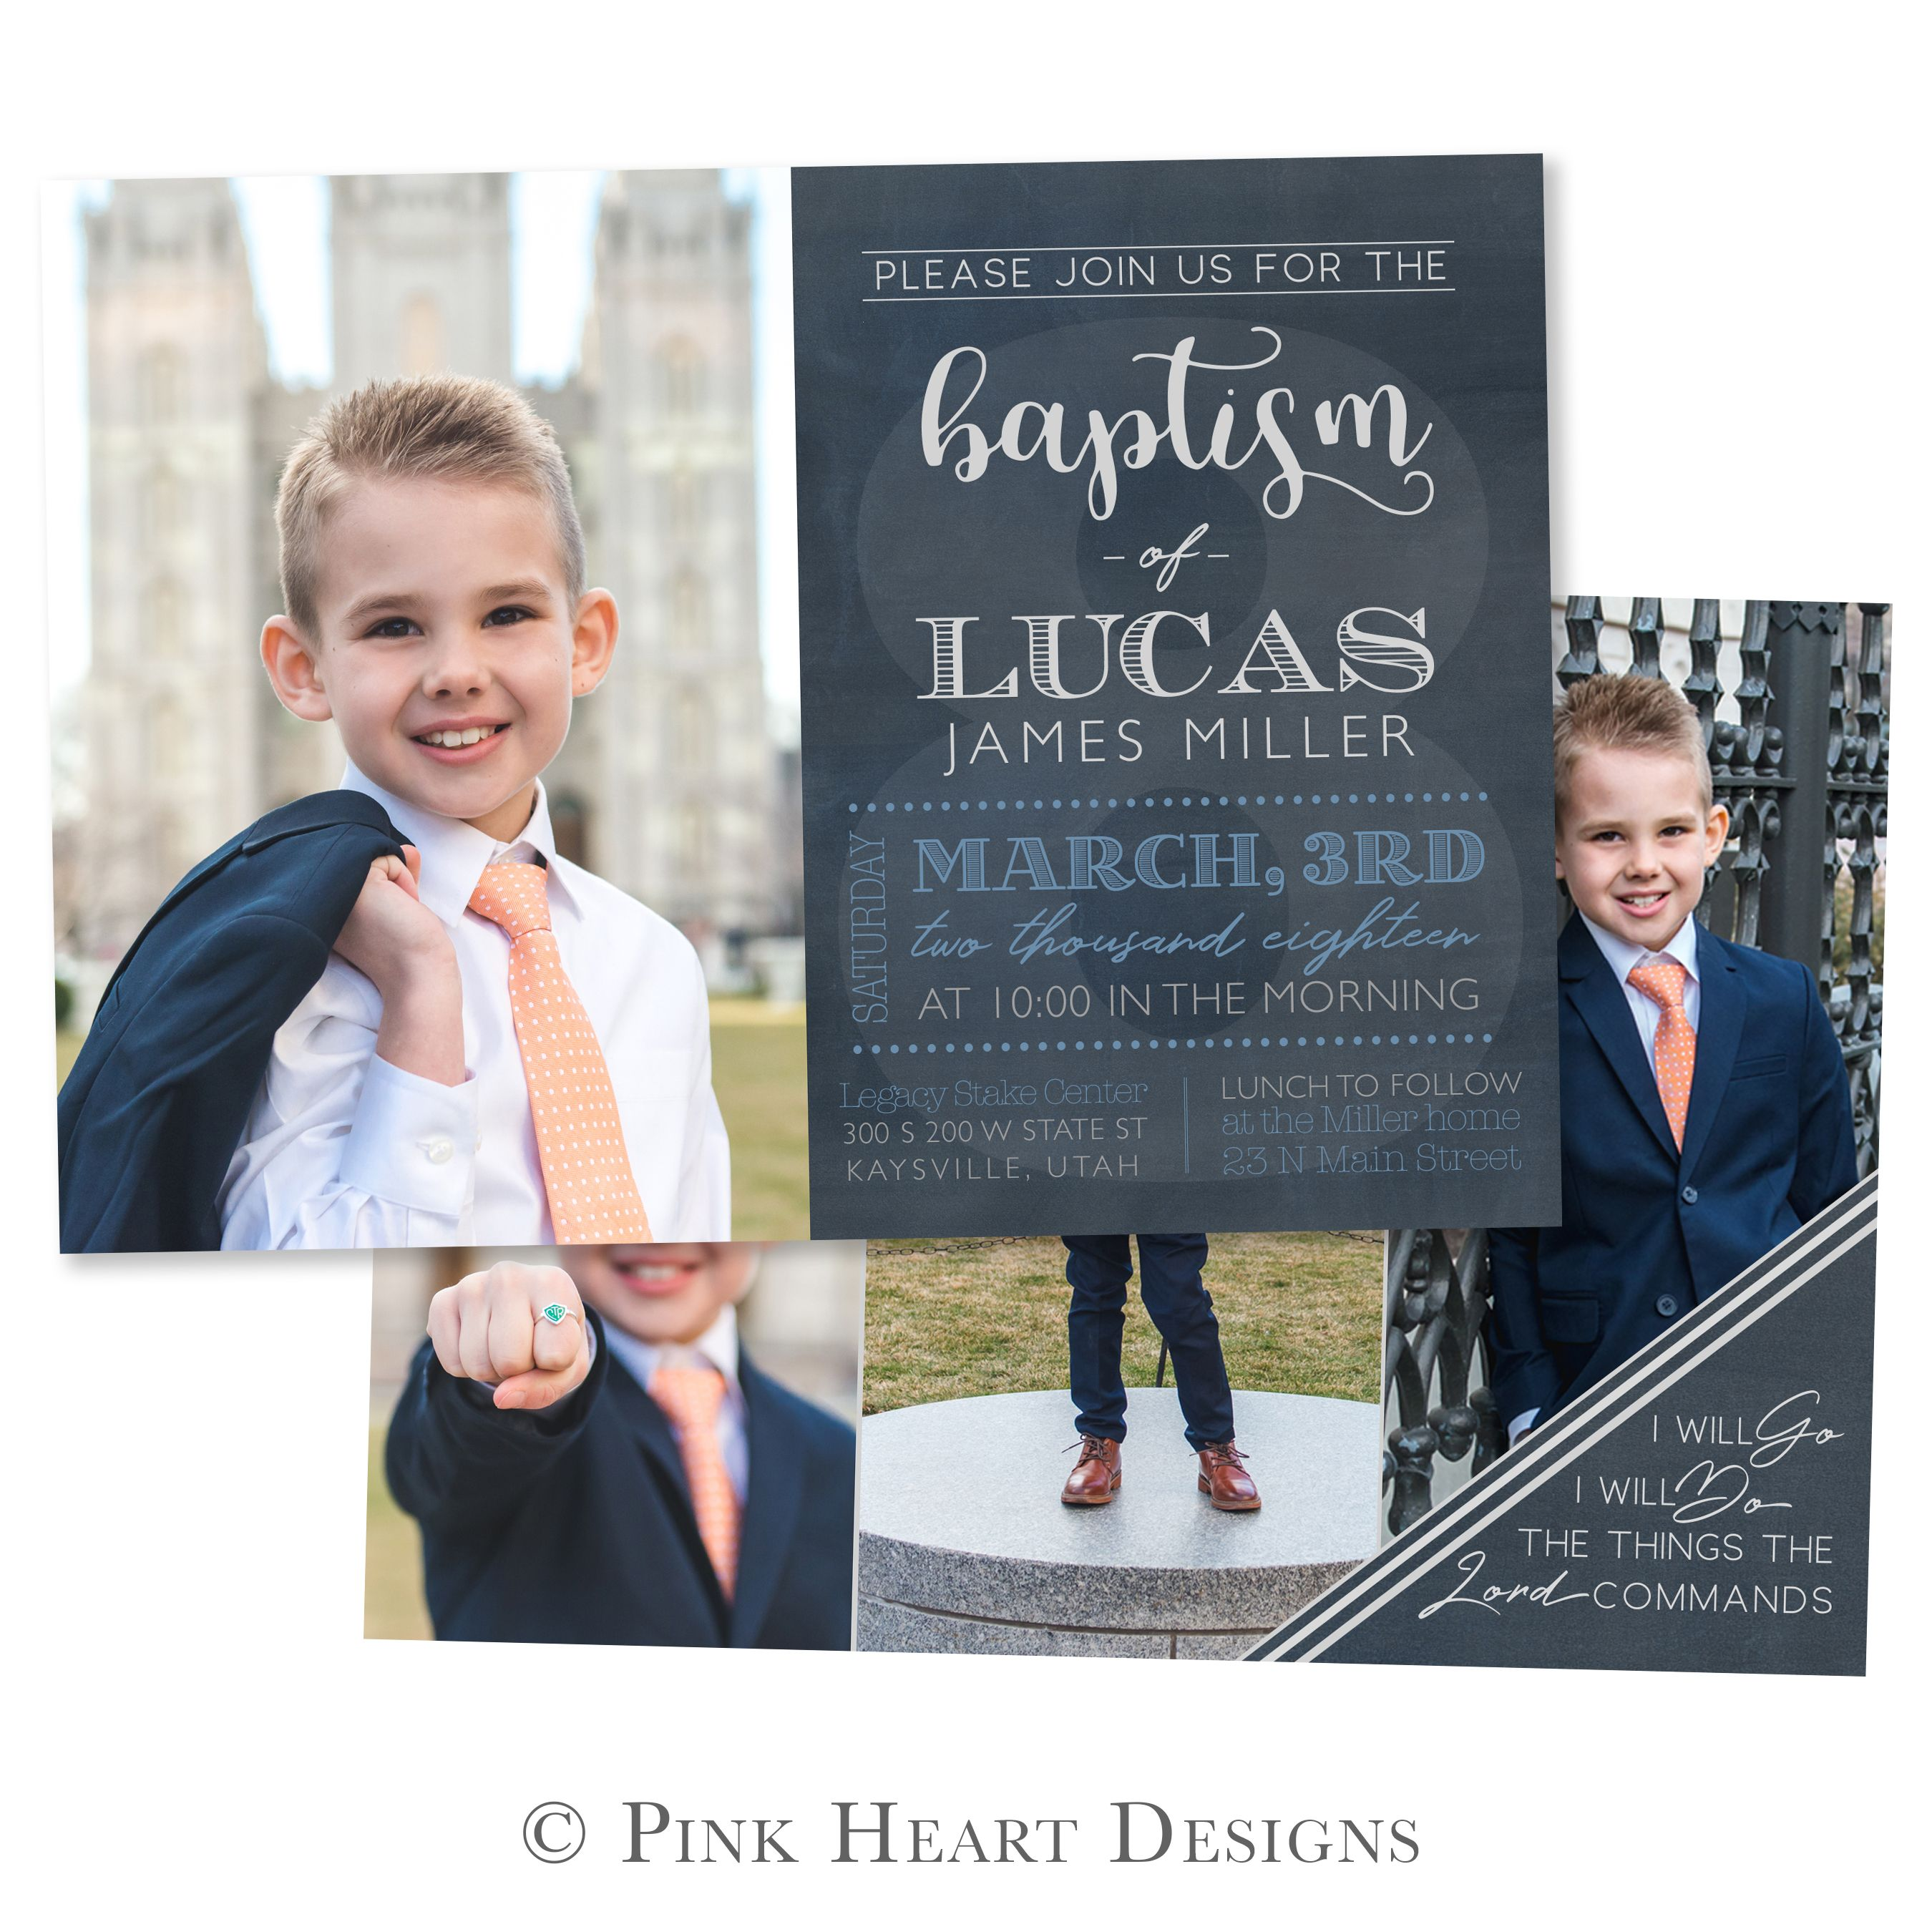 Elegant LDS Baptism Announcement | I Will GO, I Will DO LDS Boy Baptism Invite  Template